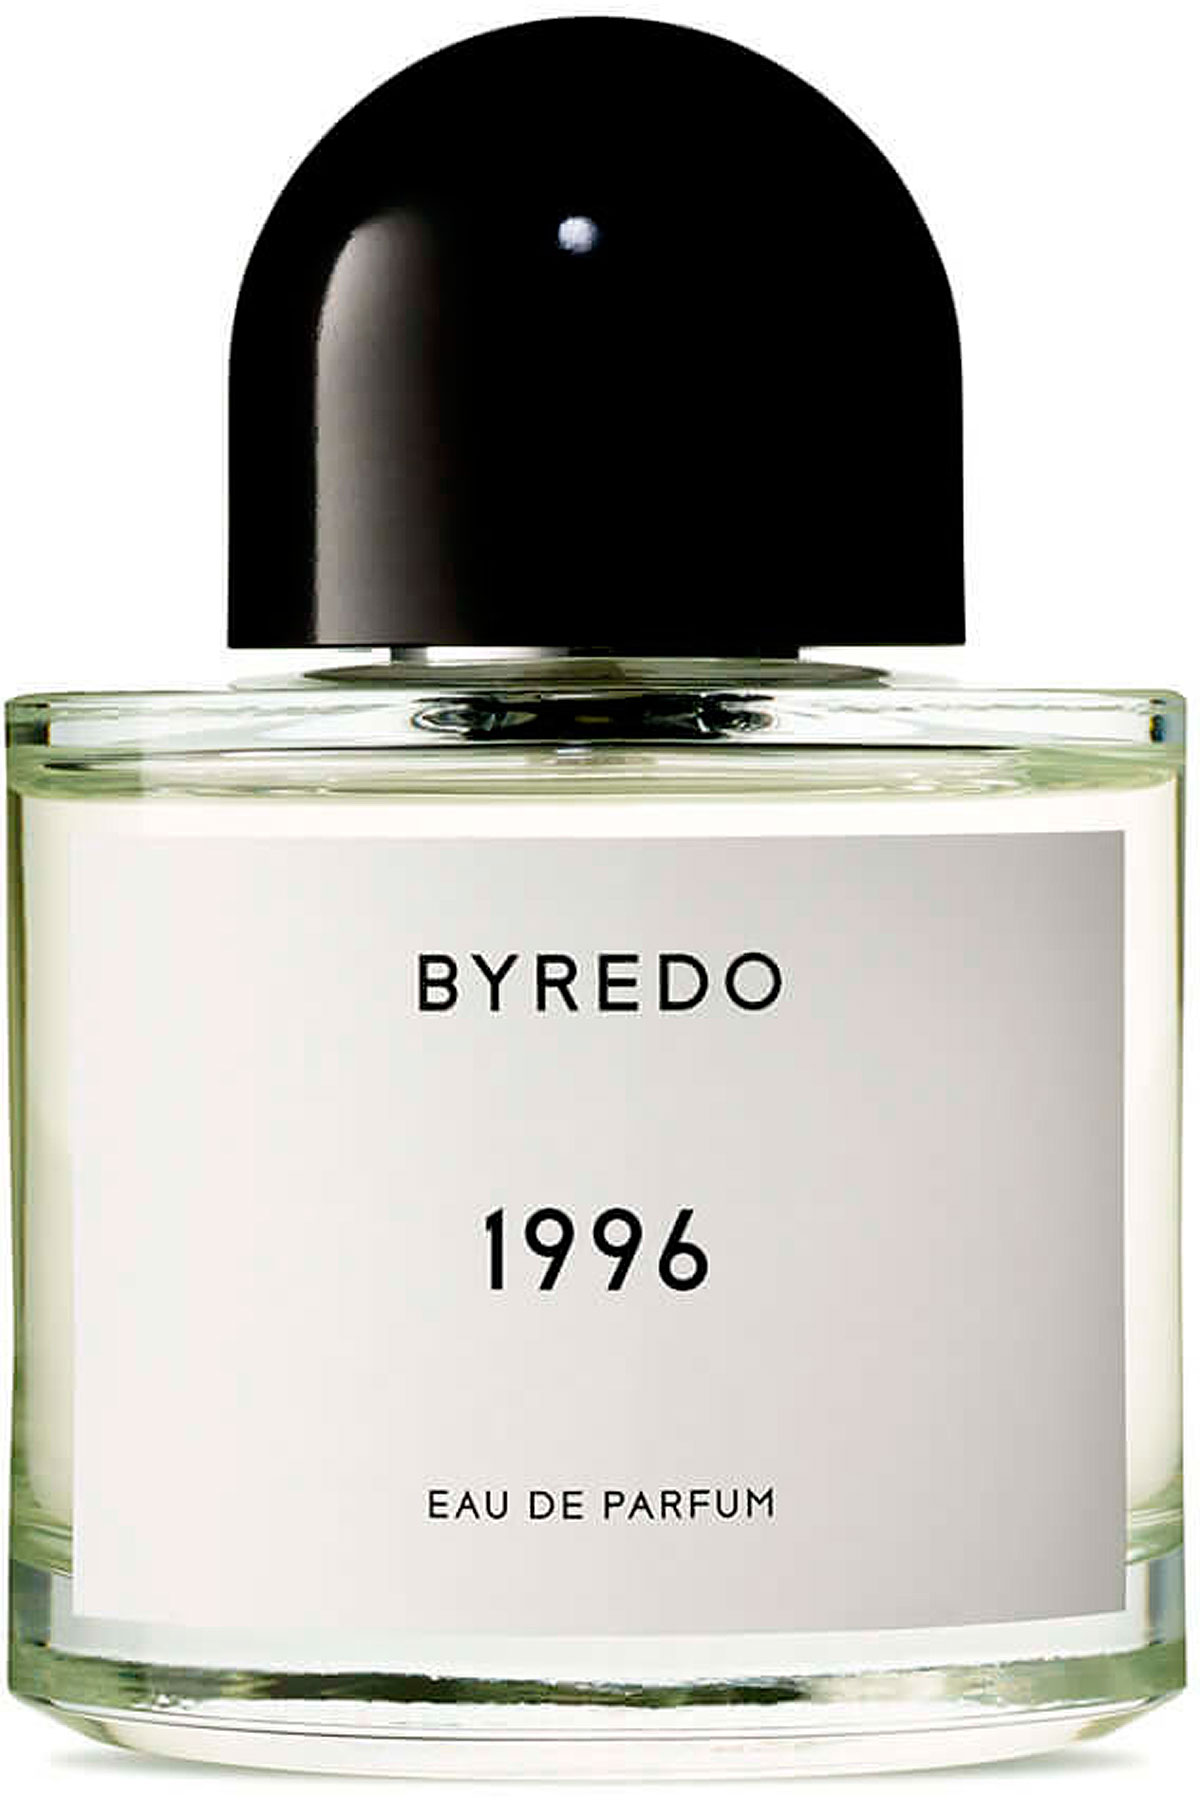 Byredo Fragrances for Women, 1996 - Eau De Parfum - 100 Ml, 2019, 100 ml